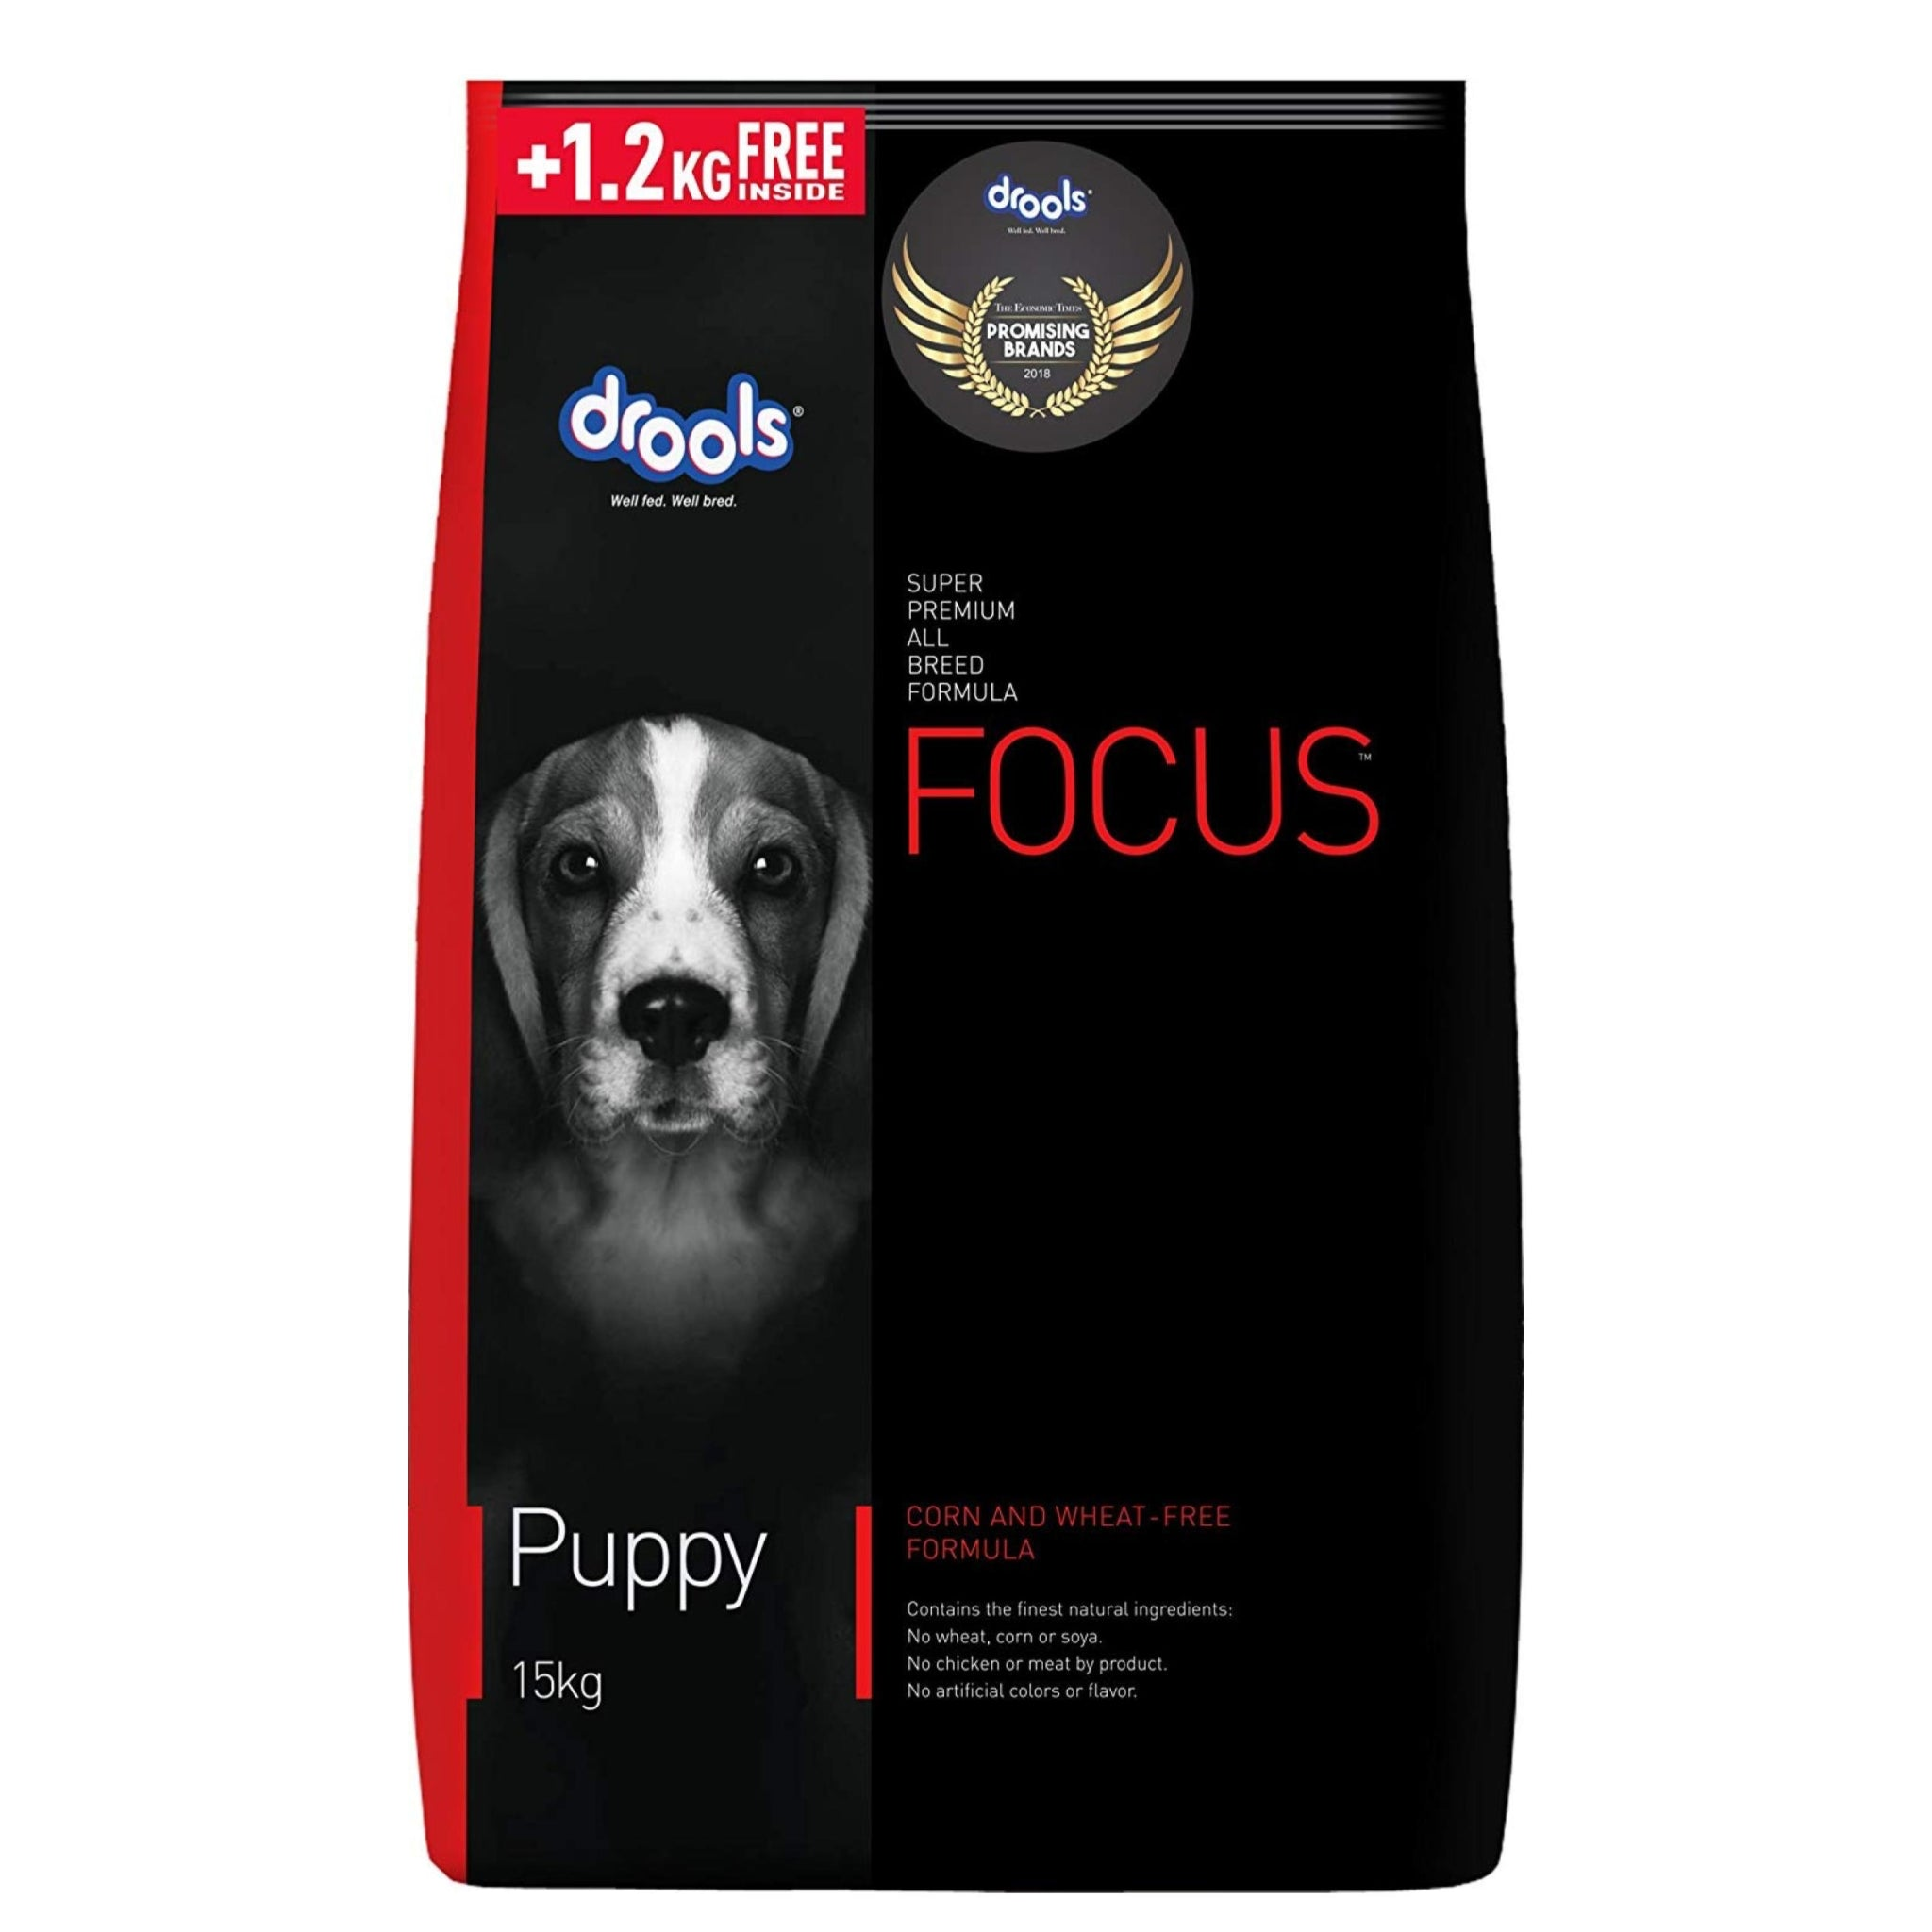 Drools Focus Puppy Dog Food - Poochles